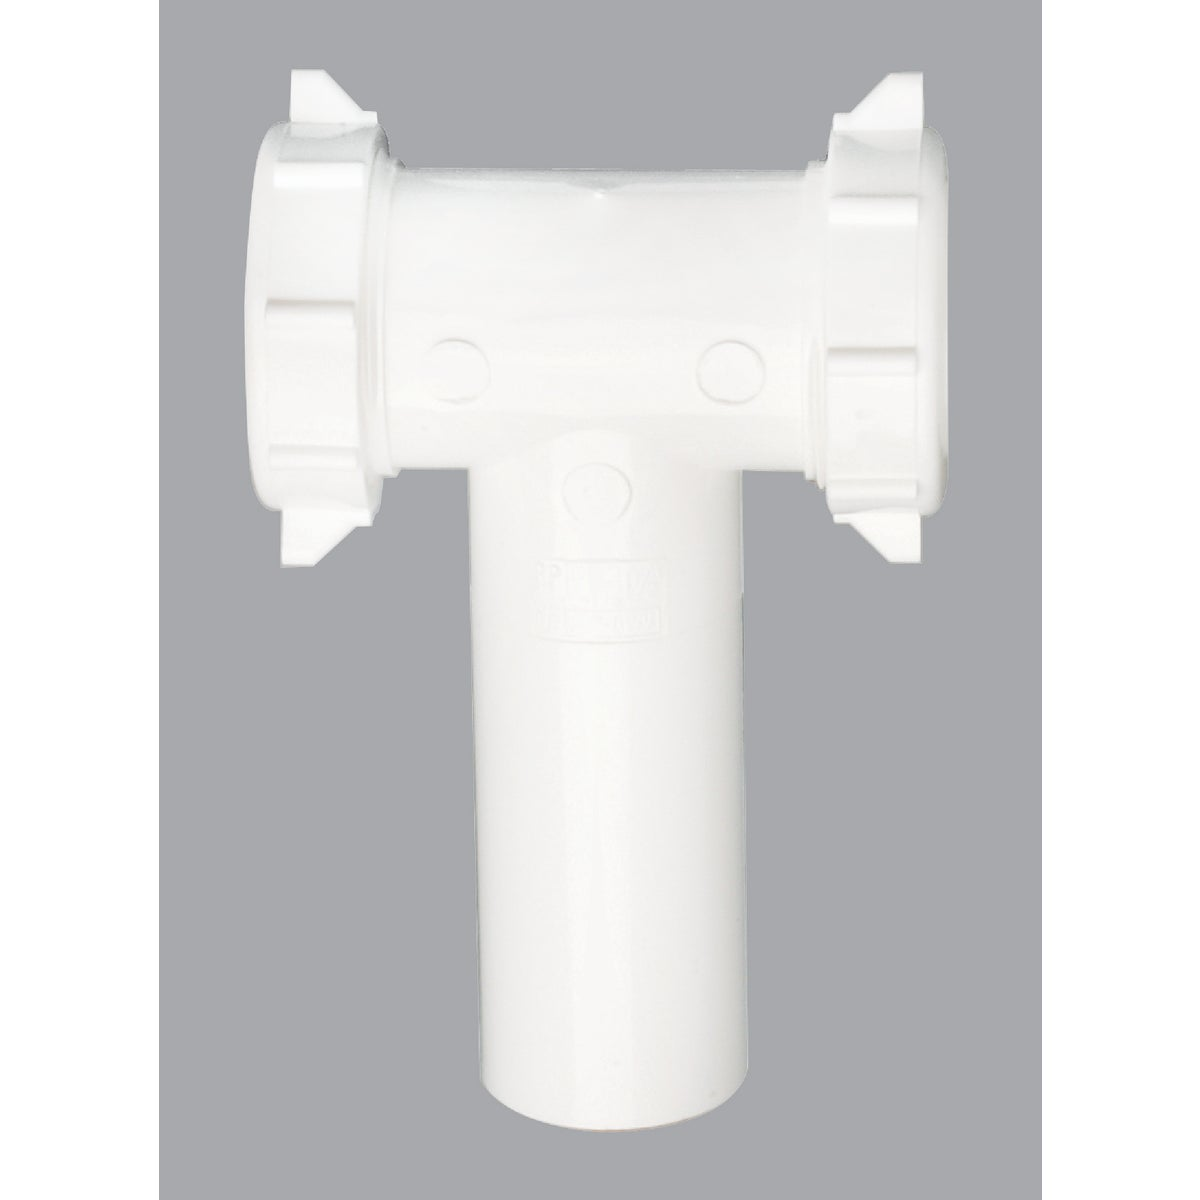 "1-1/2"" CENTER OUTLET TEE - 403218 by Plumb Pak/keeney Mfg"